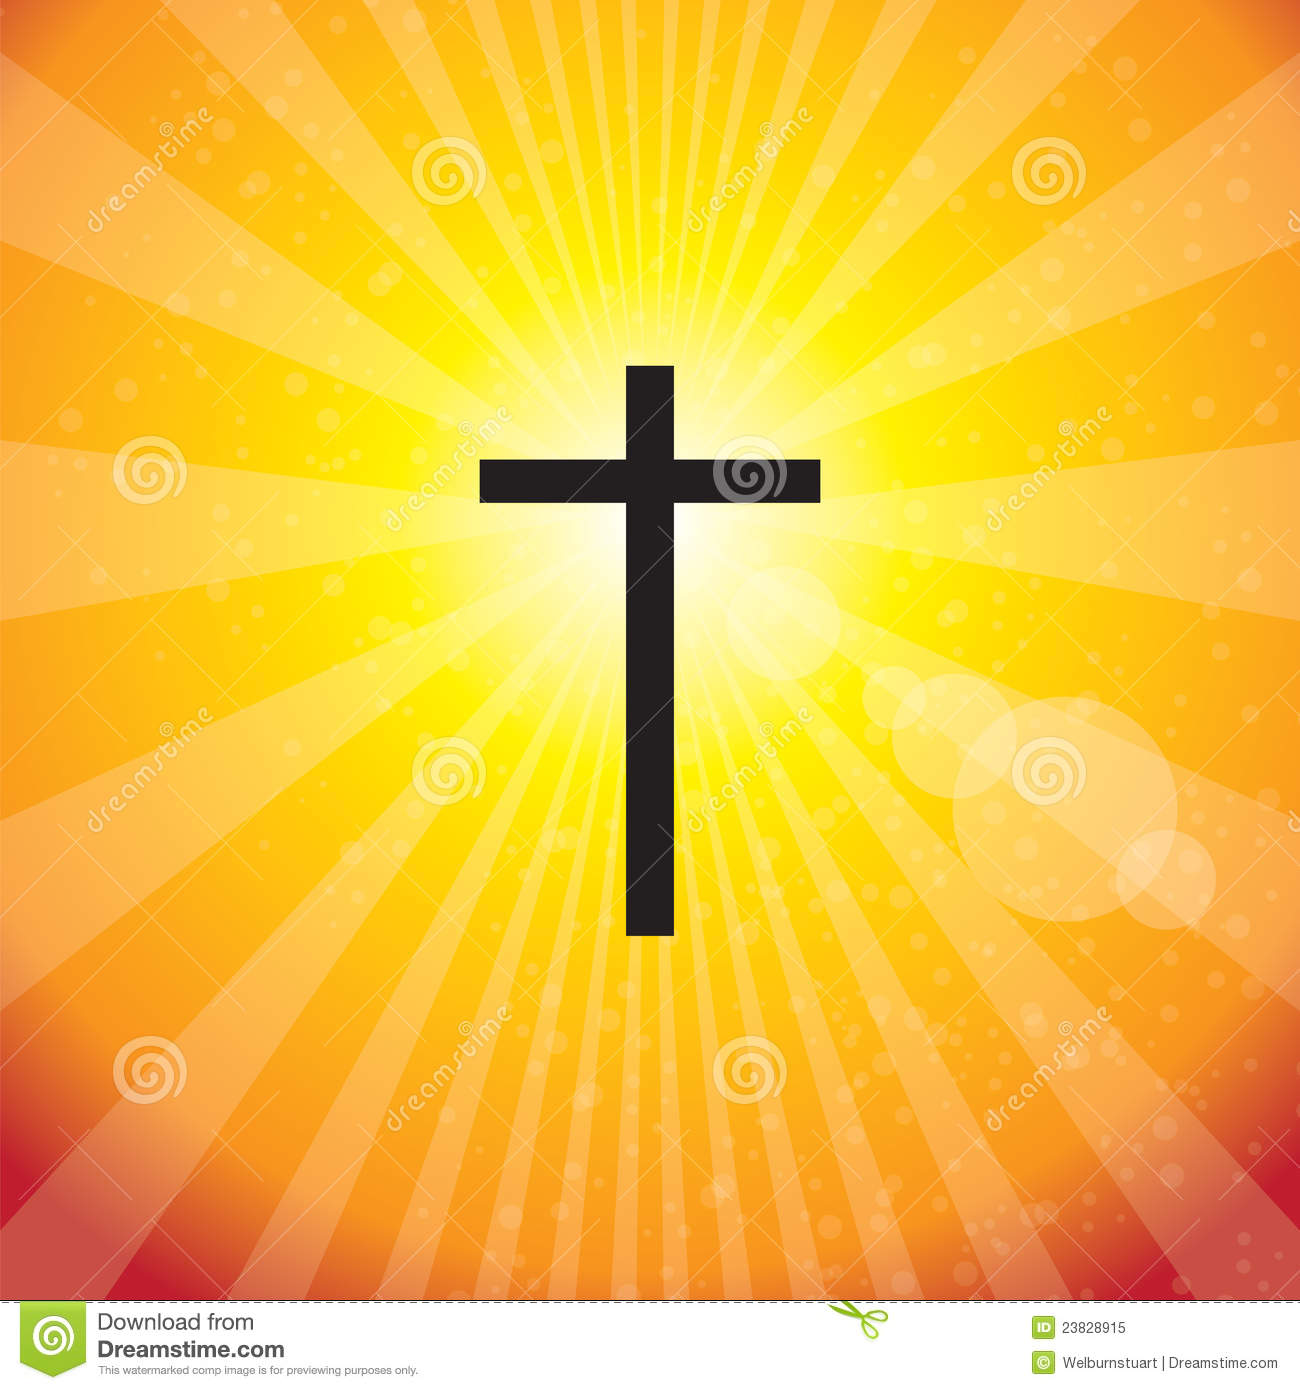 Wallpaper Jesus Christ 3d Rays Cross Royalty Free Stock Photo Image 23828915